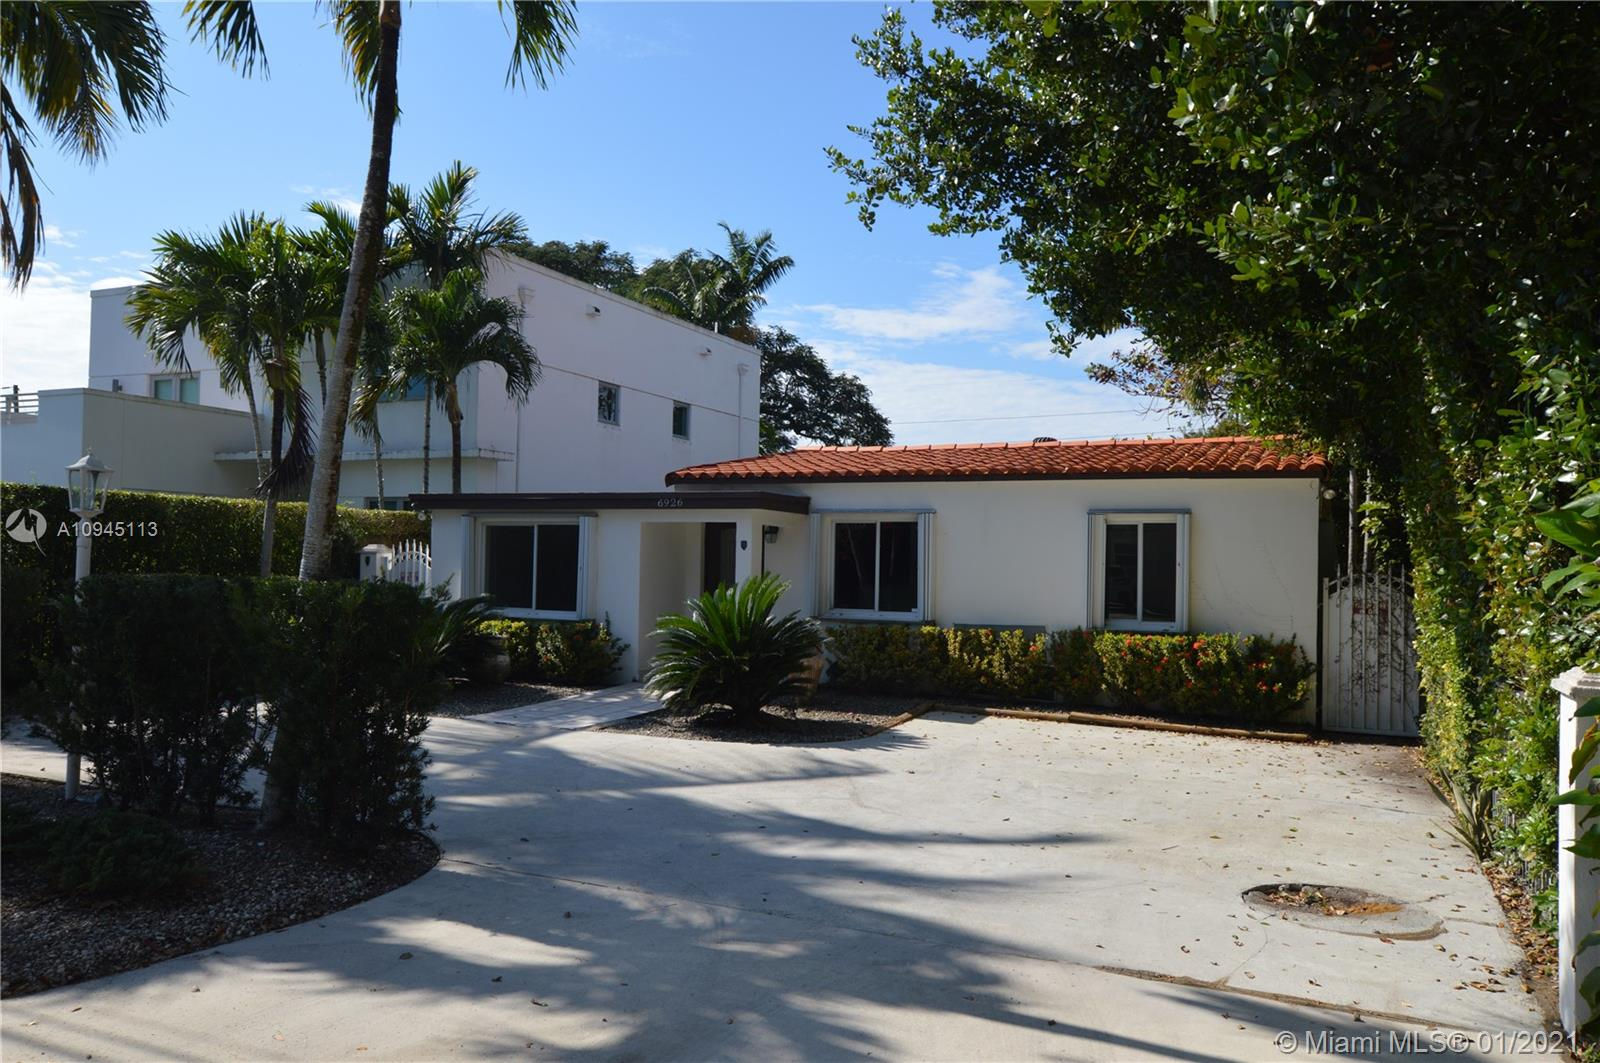 OPPORTUNITY KNOCKS TO OWN THIS BEAUTIFUL UPDATED 3BED 2.5BATH ONE STORY SINGLE FAMILY LOCATED IN THE HEART OF MIAMI RIGHT OFF SUNSET DR NEXT TO MILLION DOLLAR HOMES. THIS BEAUTY FEATURES MARBLE FLOORS THROUGHOUT MAIN LIVING AREAS, WOOD FLOORS IN BEDROOMS. LARGE MASTER SUITE, WITH WALK-IN CLOSET, LARGE FAMILY ROOM GREAT FOR ENTERTAINING FAMILY AND GUEST. SCREENED IN PORCH, WOOD KITCHEN CABINETS WITH GRANITE COUNTER TOPS, SS APPLIANCES. THIS IS A TRULY MUST SEE CALL TODAY, AS THIS ONE WILL NOT LAST!! LIVING AREA MUCH LARGER THAN TAX ROLL AS PER OWNER!